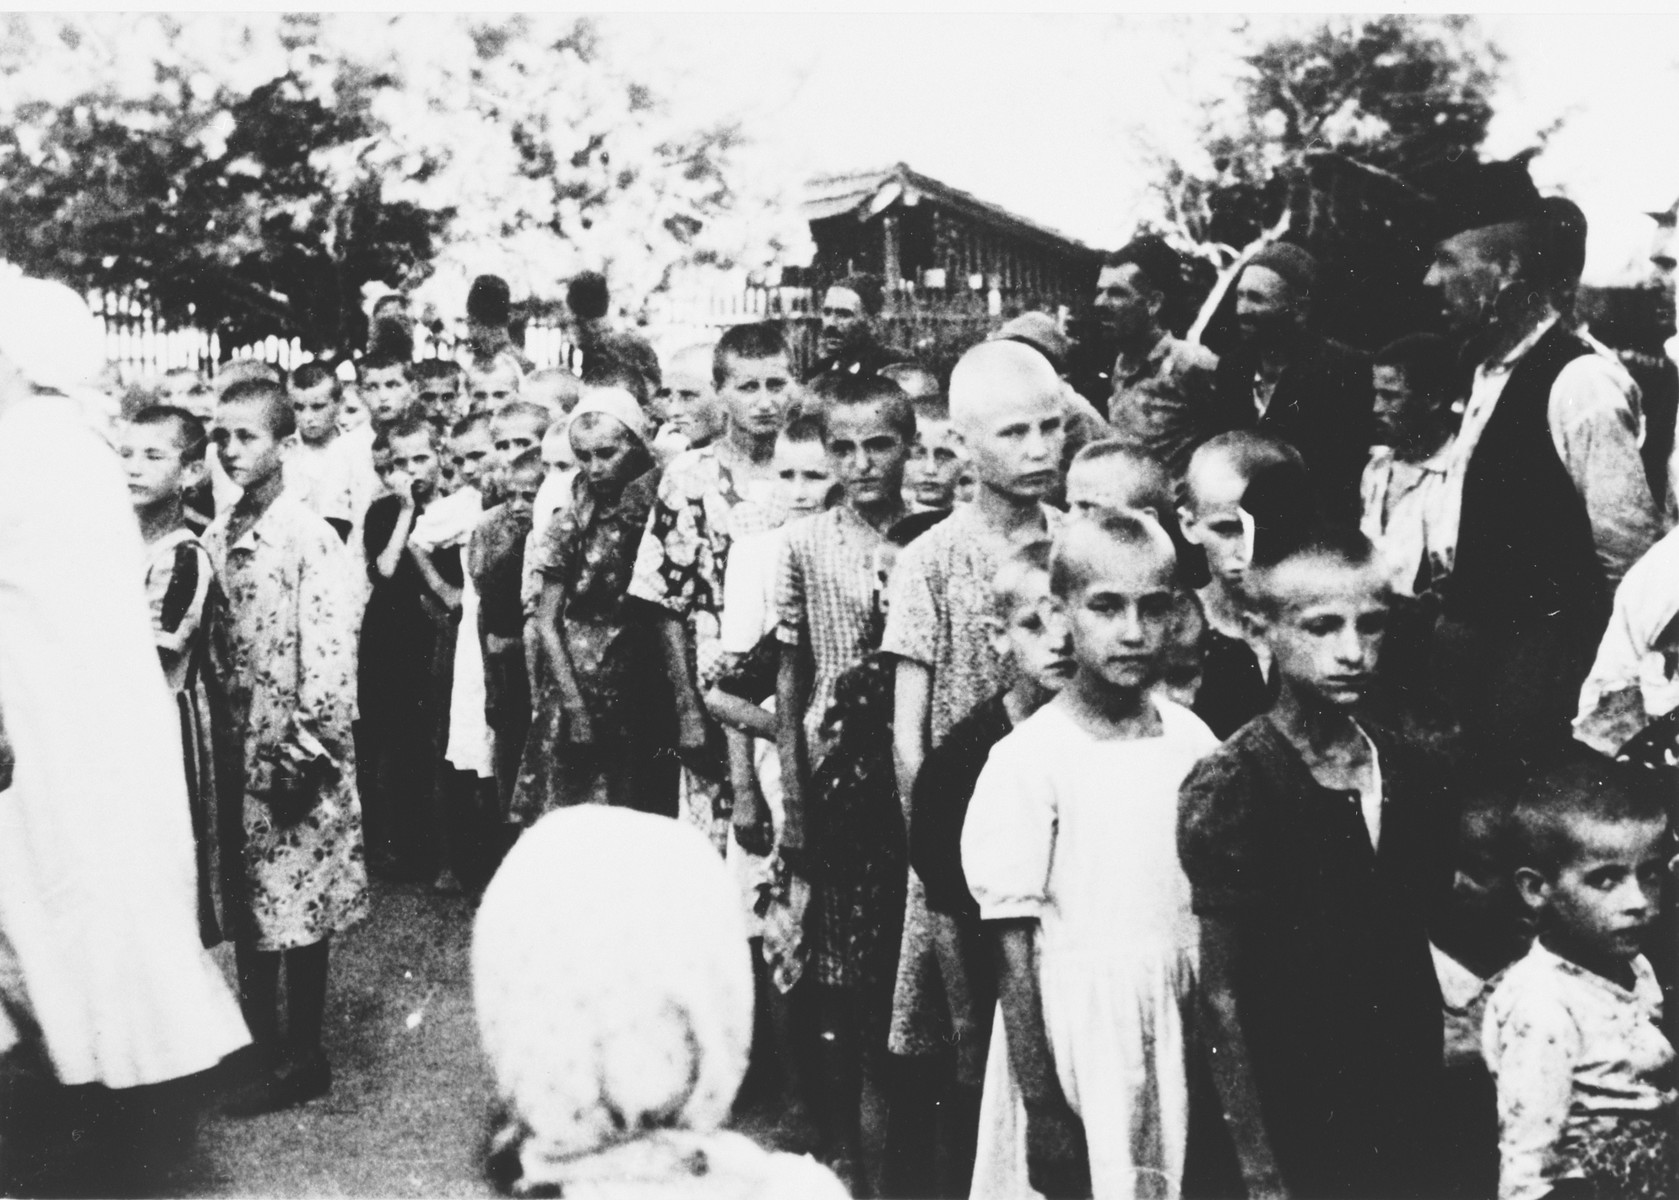 A group of children wait in line at an unidentified concentration camp [possibly Sisak] in Croatia.